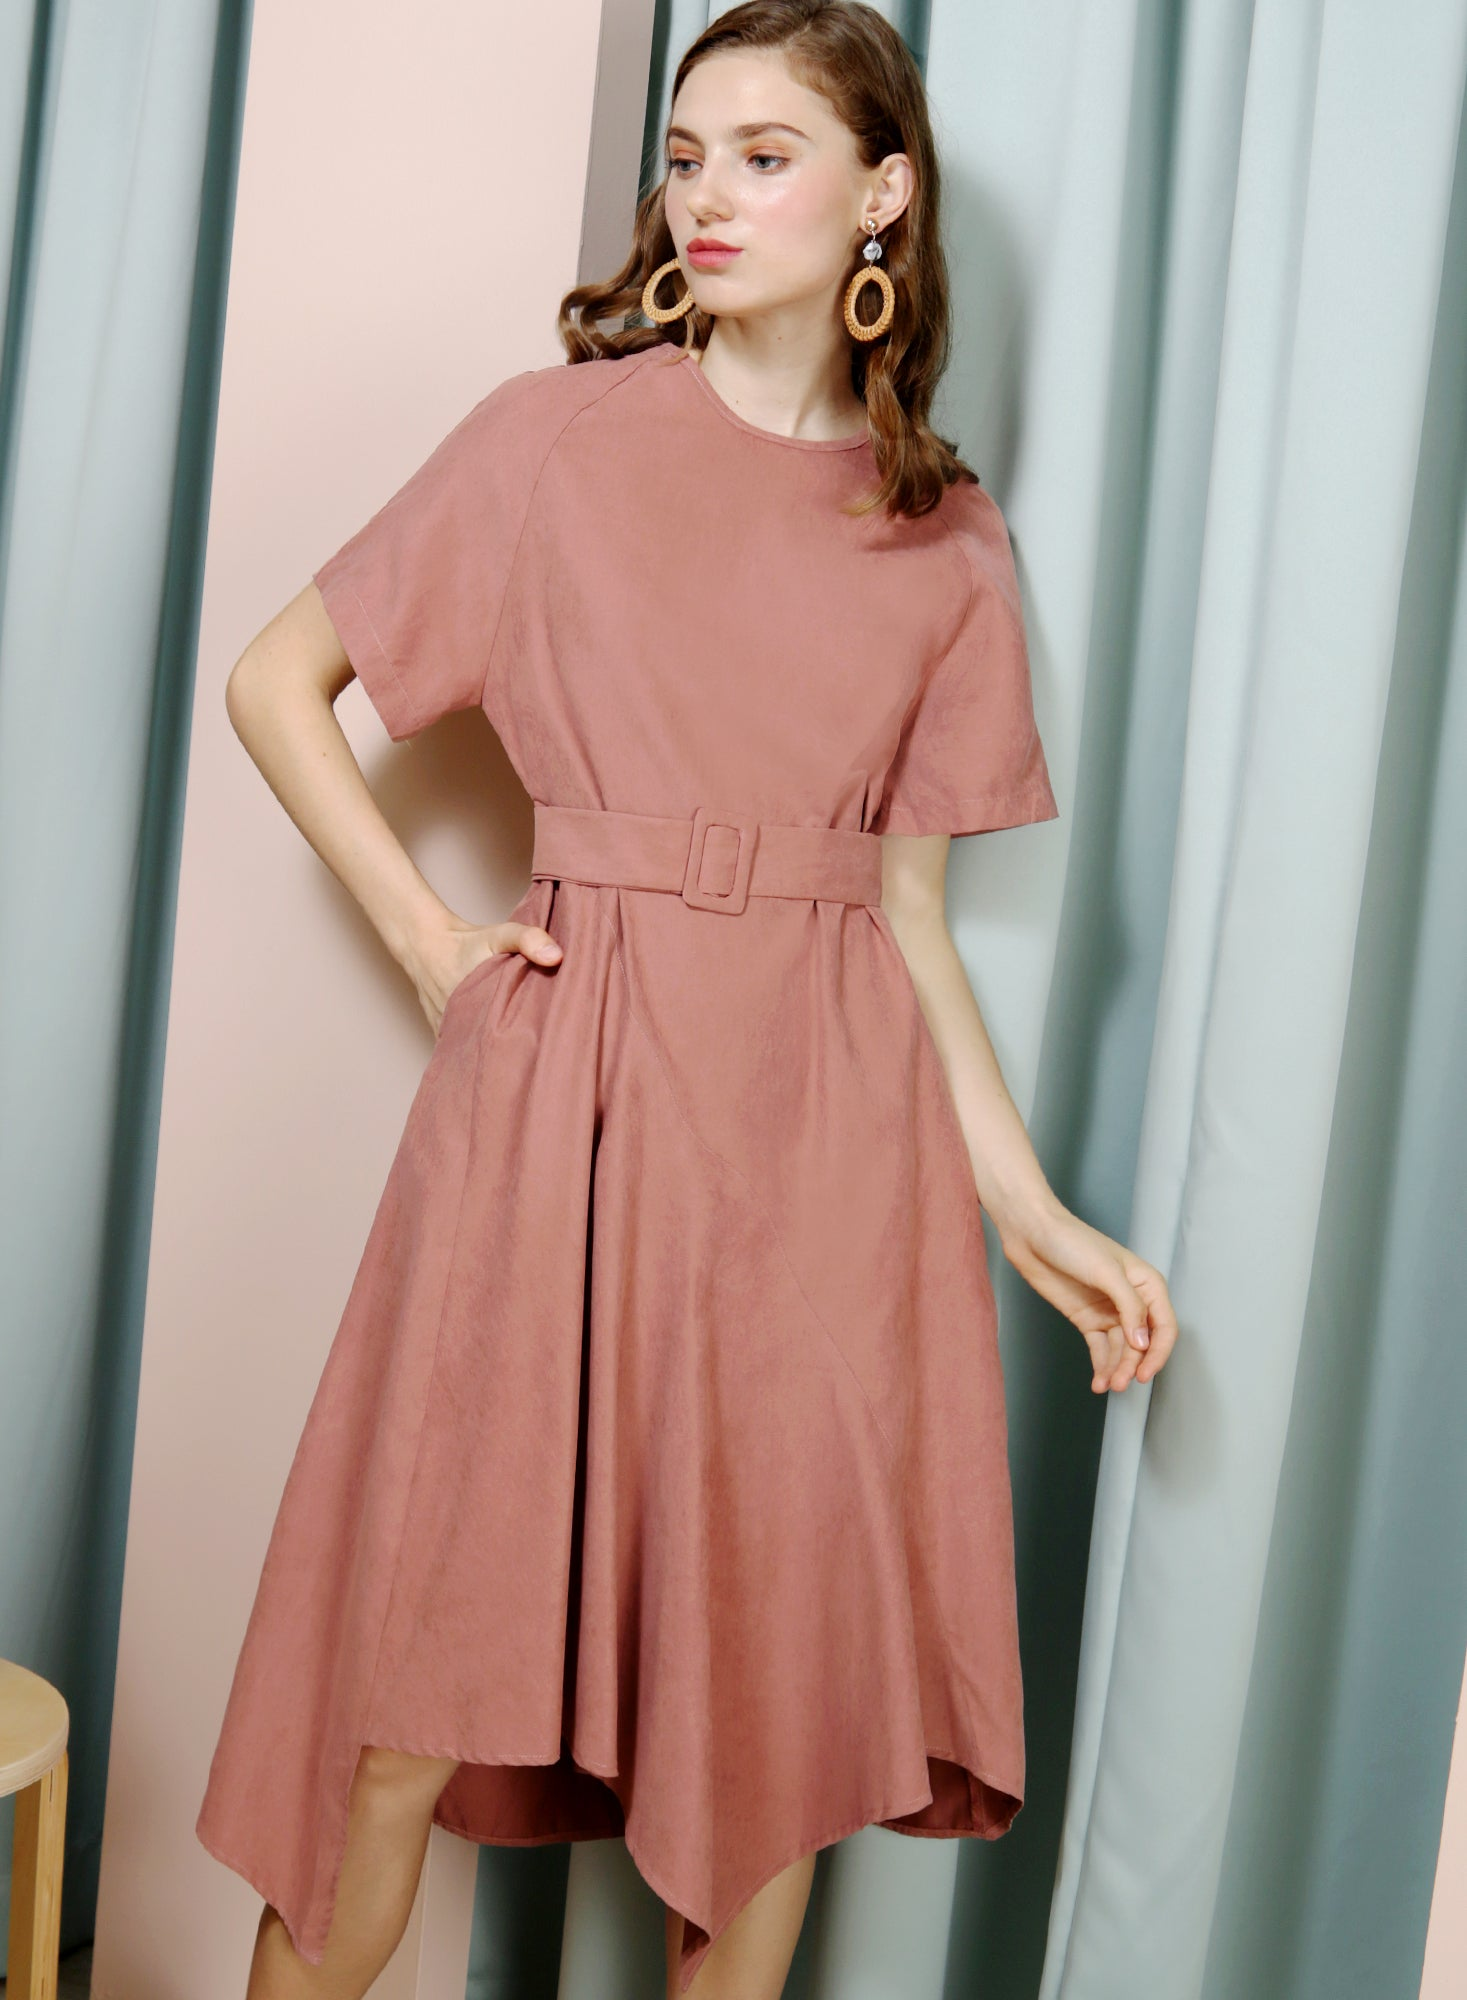 Tangent Asymmetric Hem Faux Suede Dress (Dusty Rose) - And Well Dressed